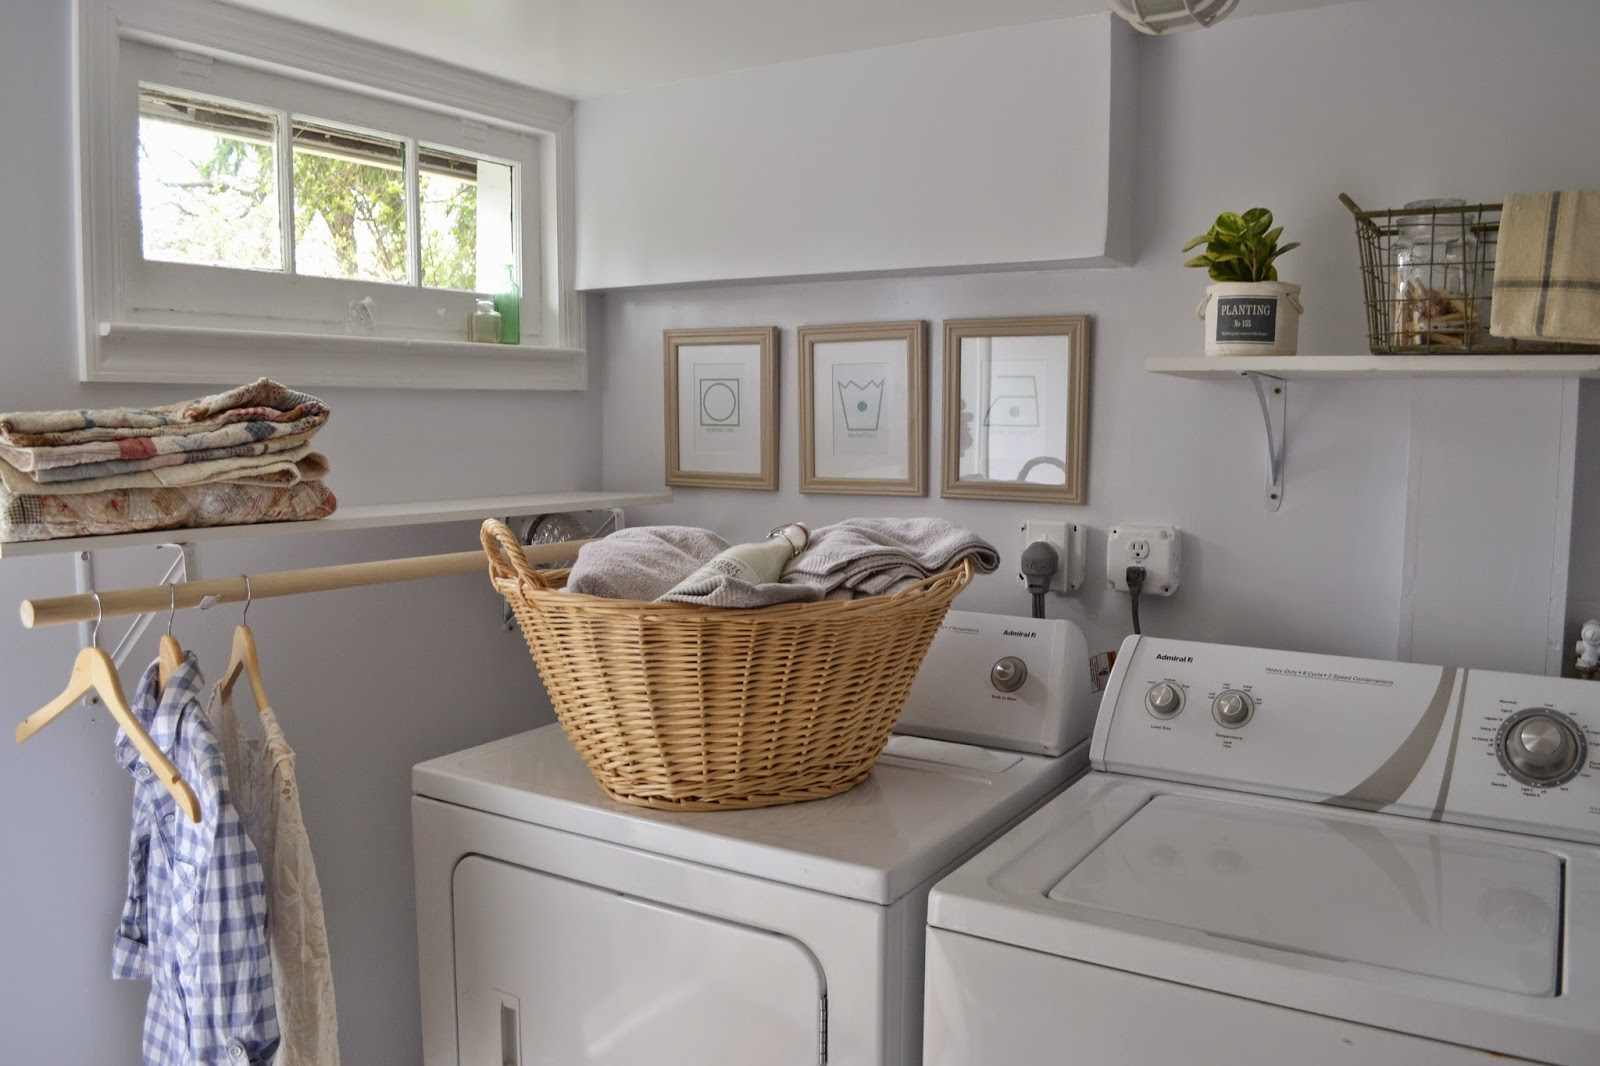 Attic Lace Laundry Room Reveal